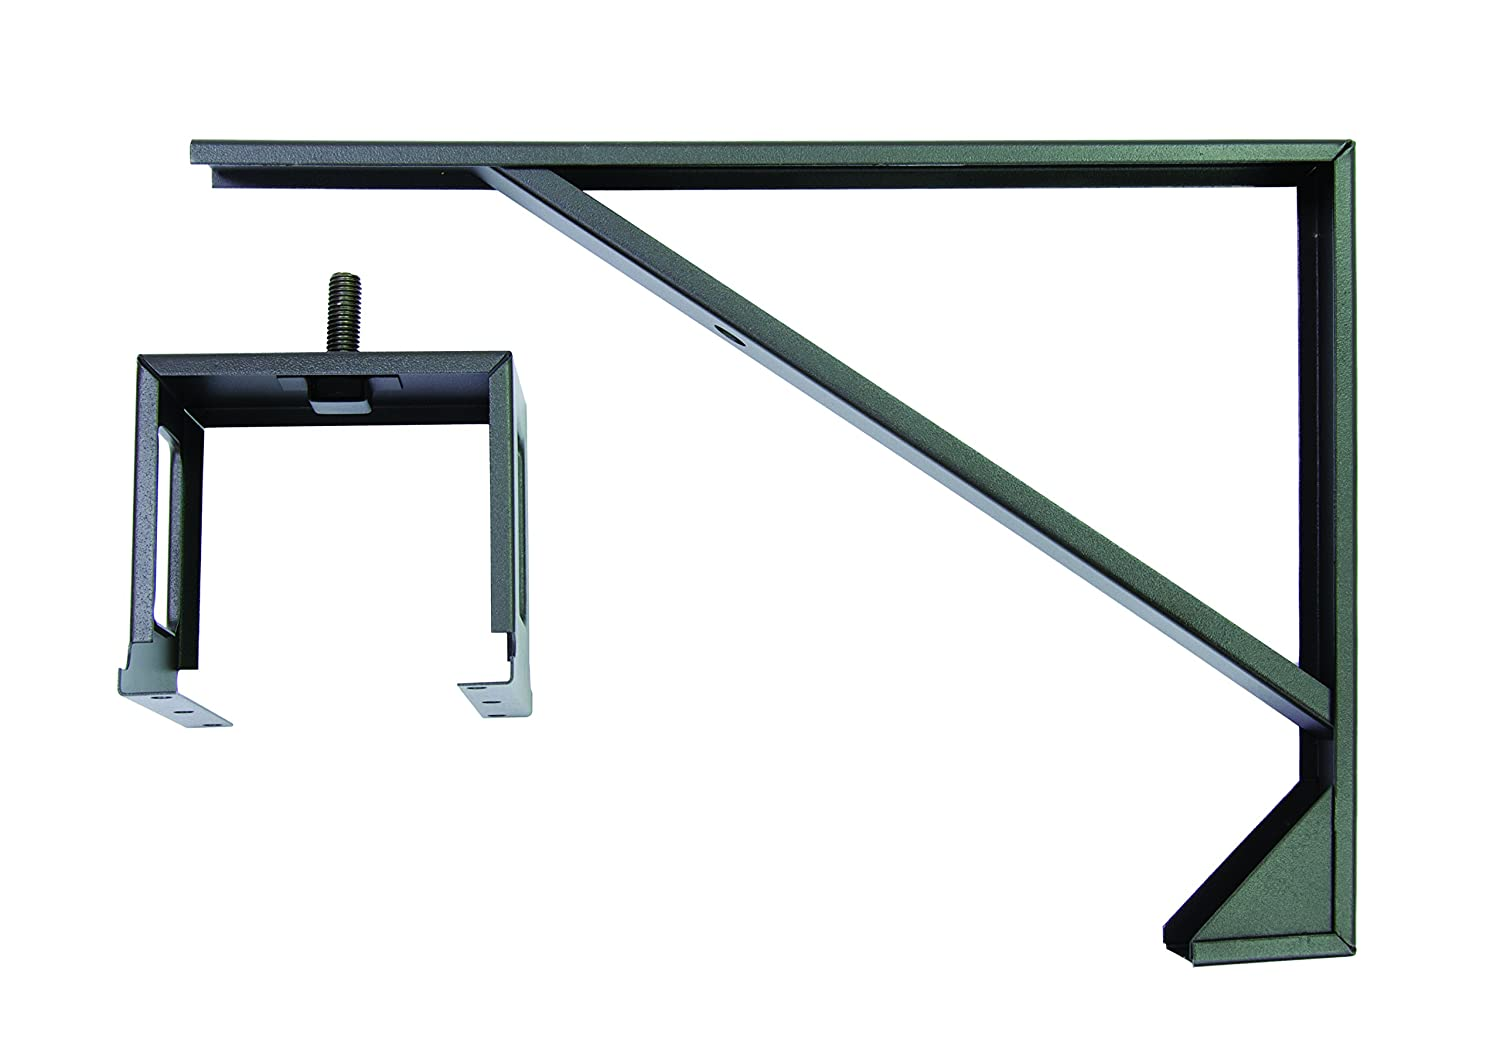 Ranking TOP13 Regular store TPI Corporation A5105 Mounting Bracket Used He Series 5100 With